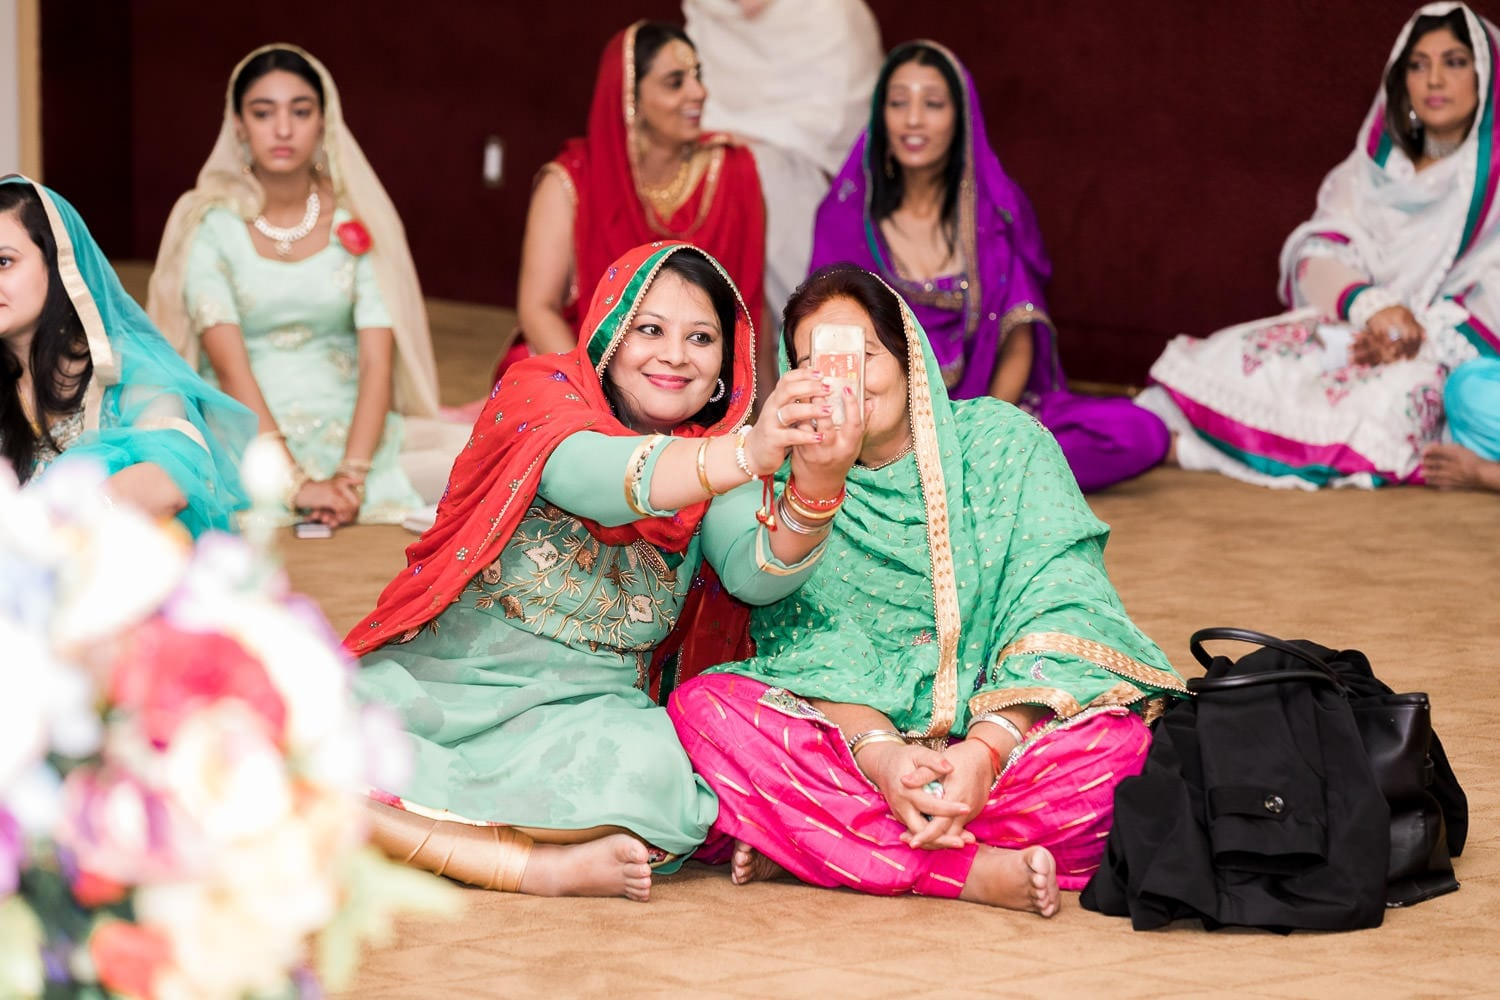 Indian wedding at the temple candid moments | Indian wedding photography Vancouver